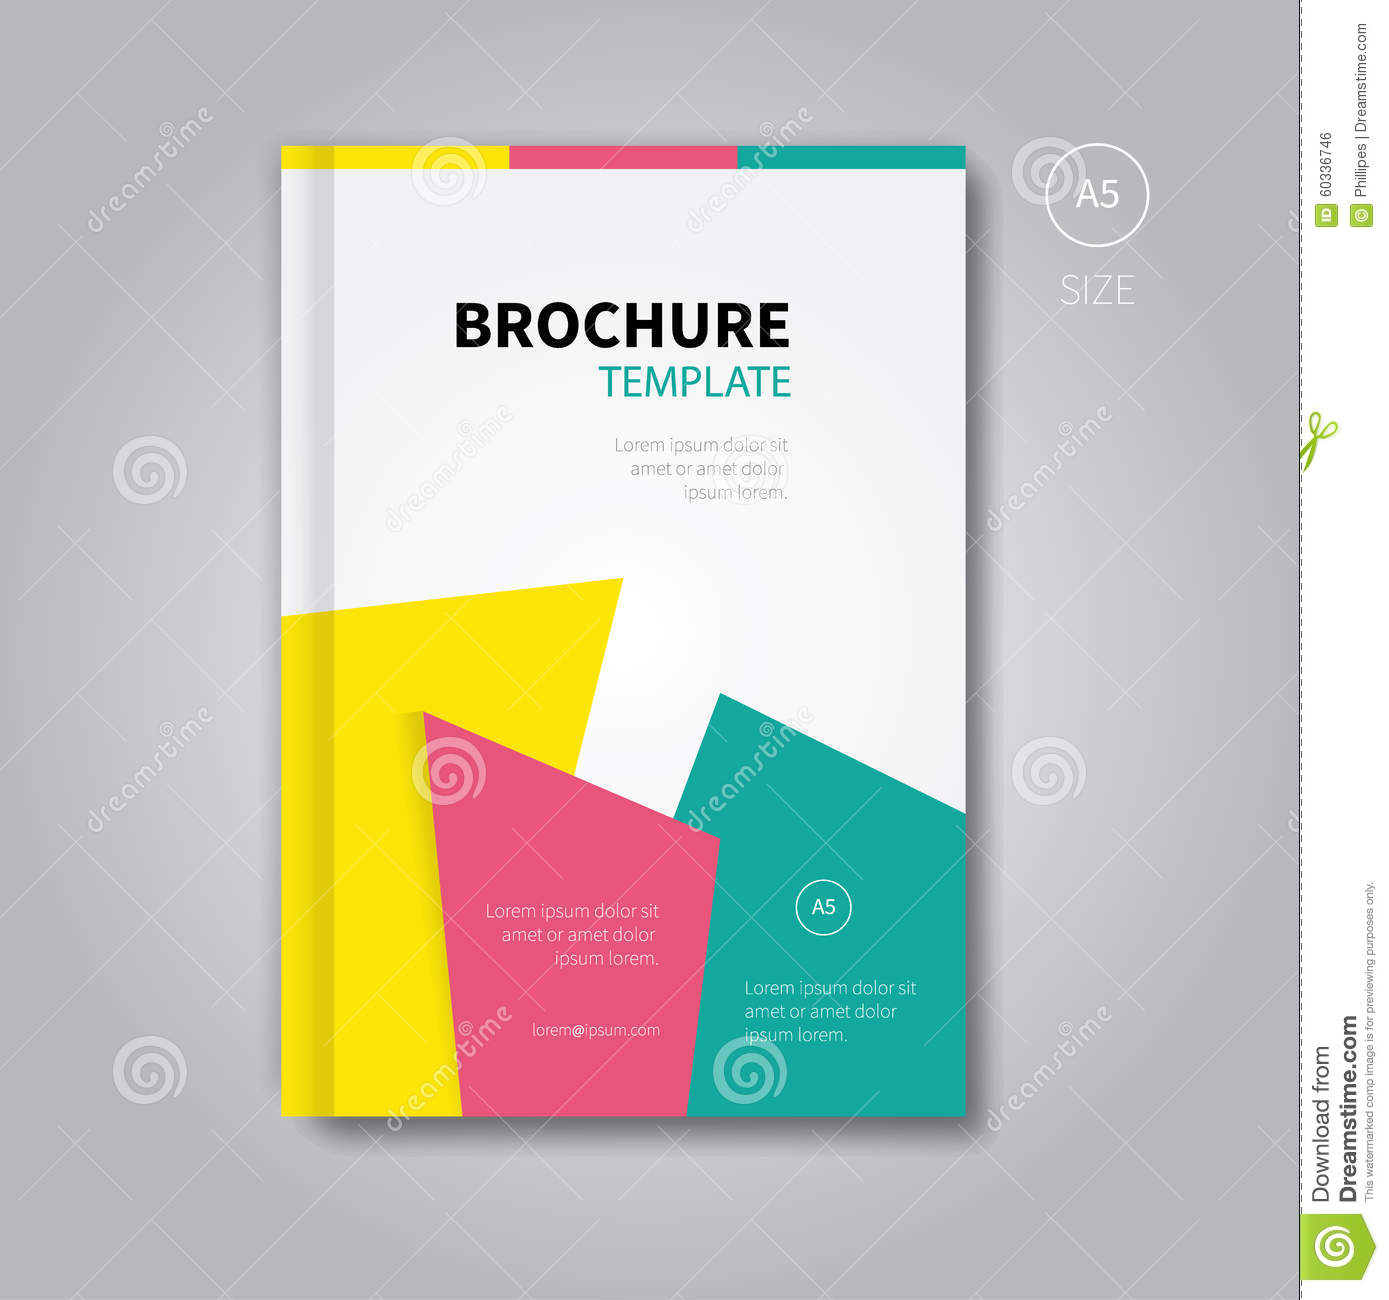 book brochure template - pin travel magazine layout image search results on pinterest